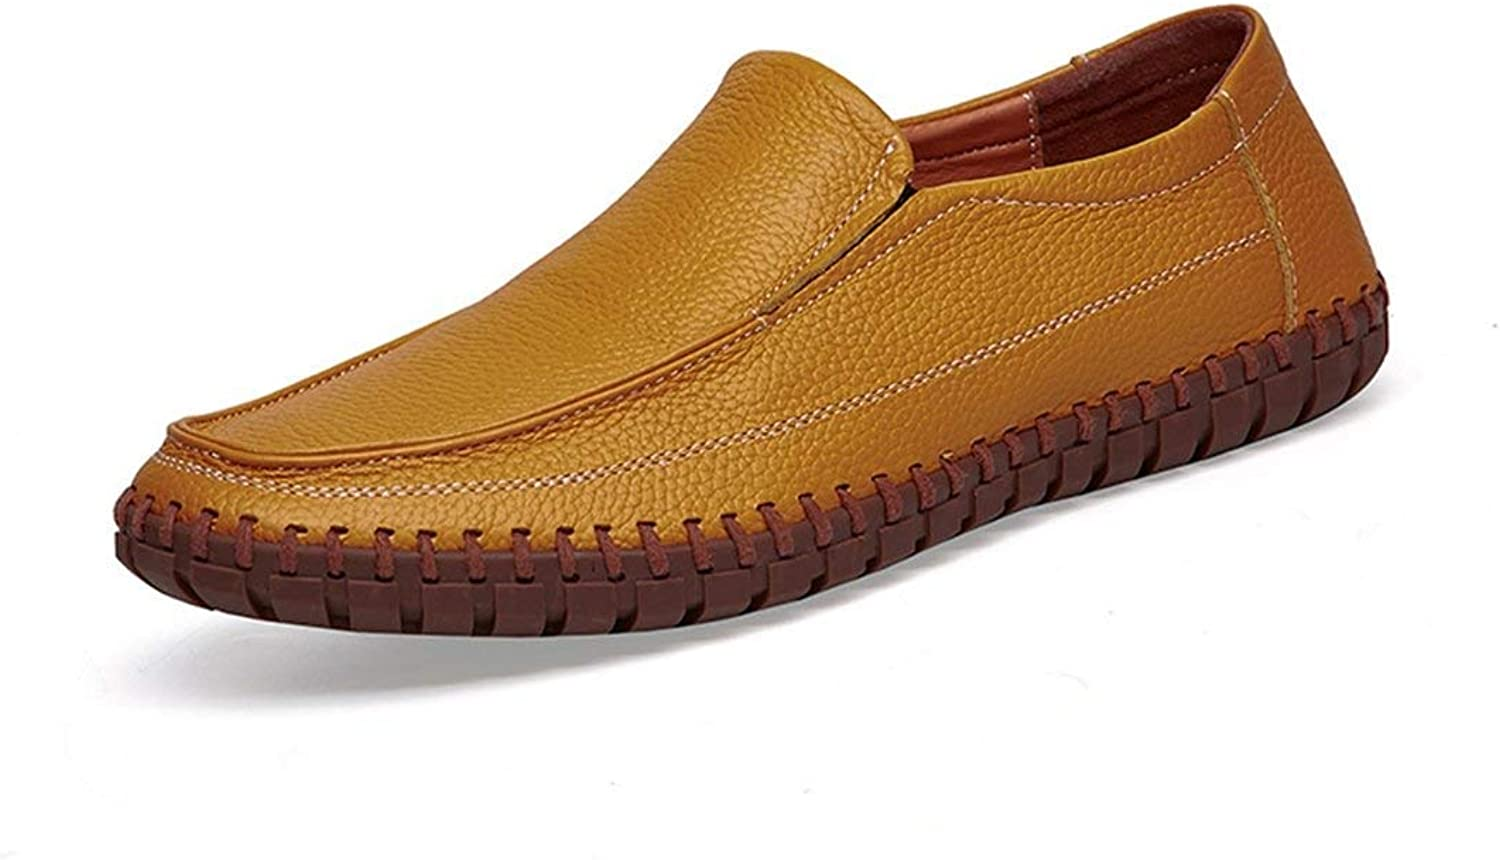 ZHRUI Boy's Men's Stitched Solid Casual Spring Loafers (color   Yellow, Size   6 UK)